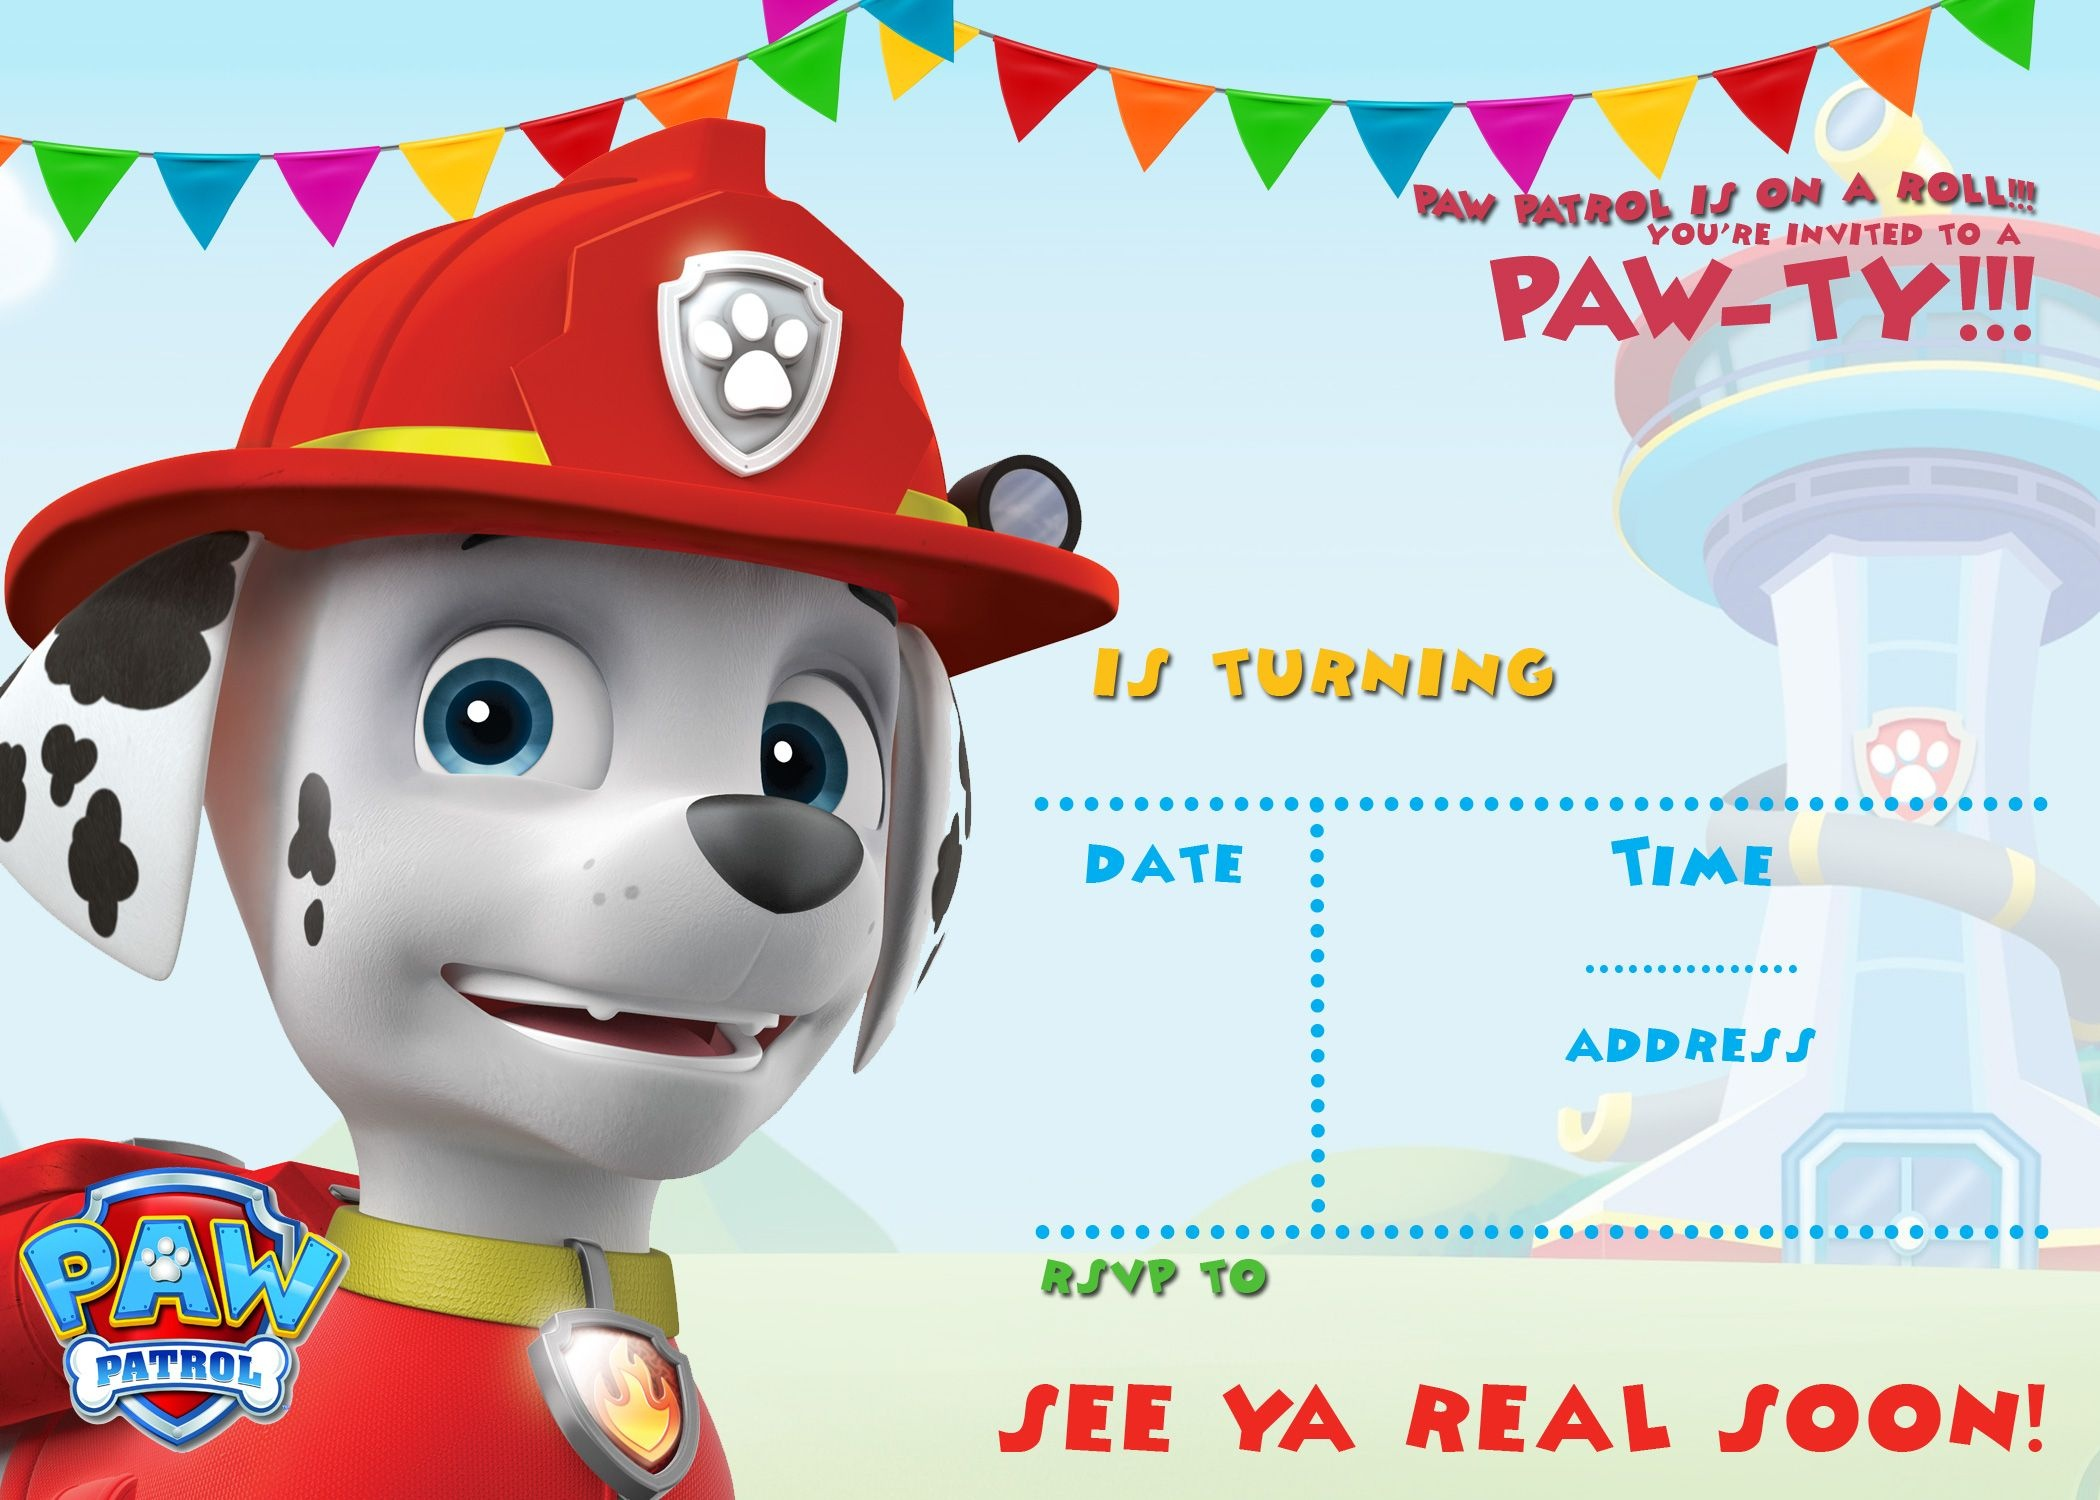 Free Printable Paw Patrol Invitation Template - All Characters | Paw - Free Printable Paw Patrol Invitations